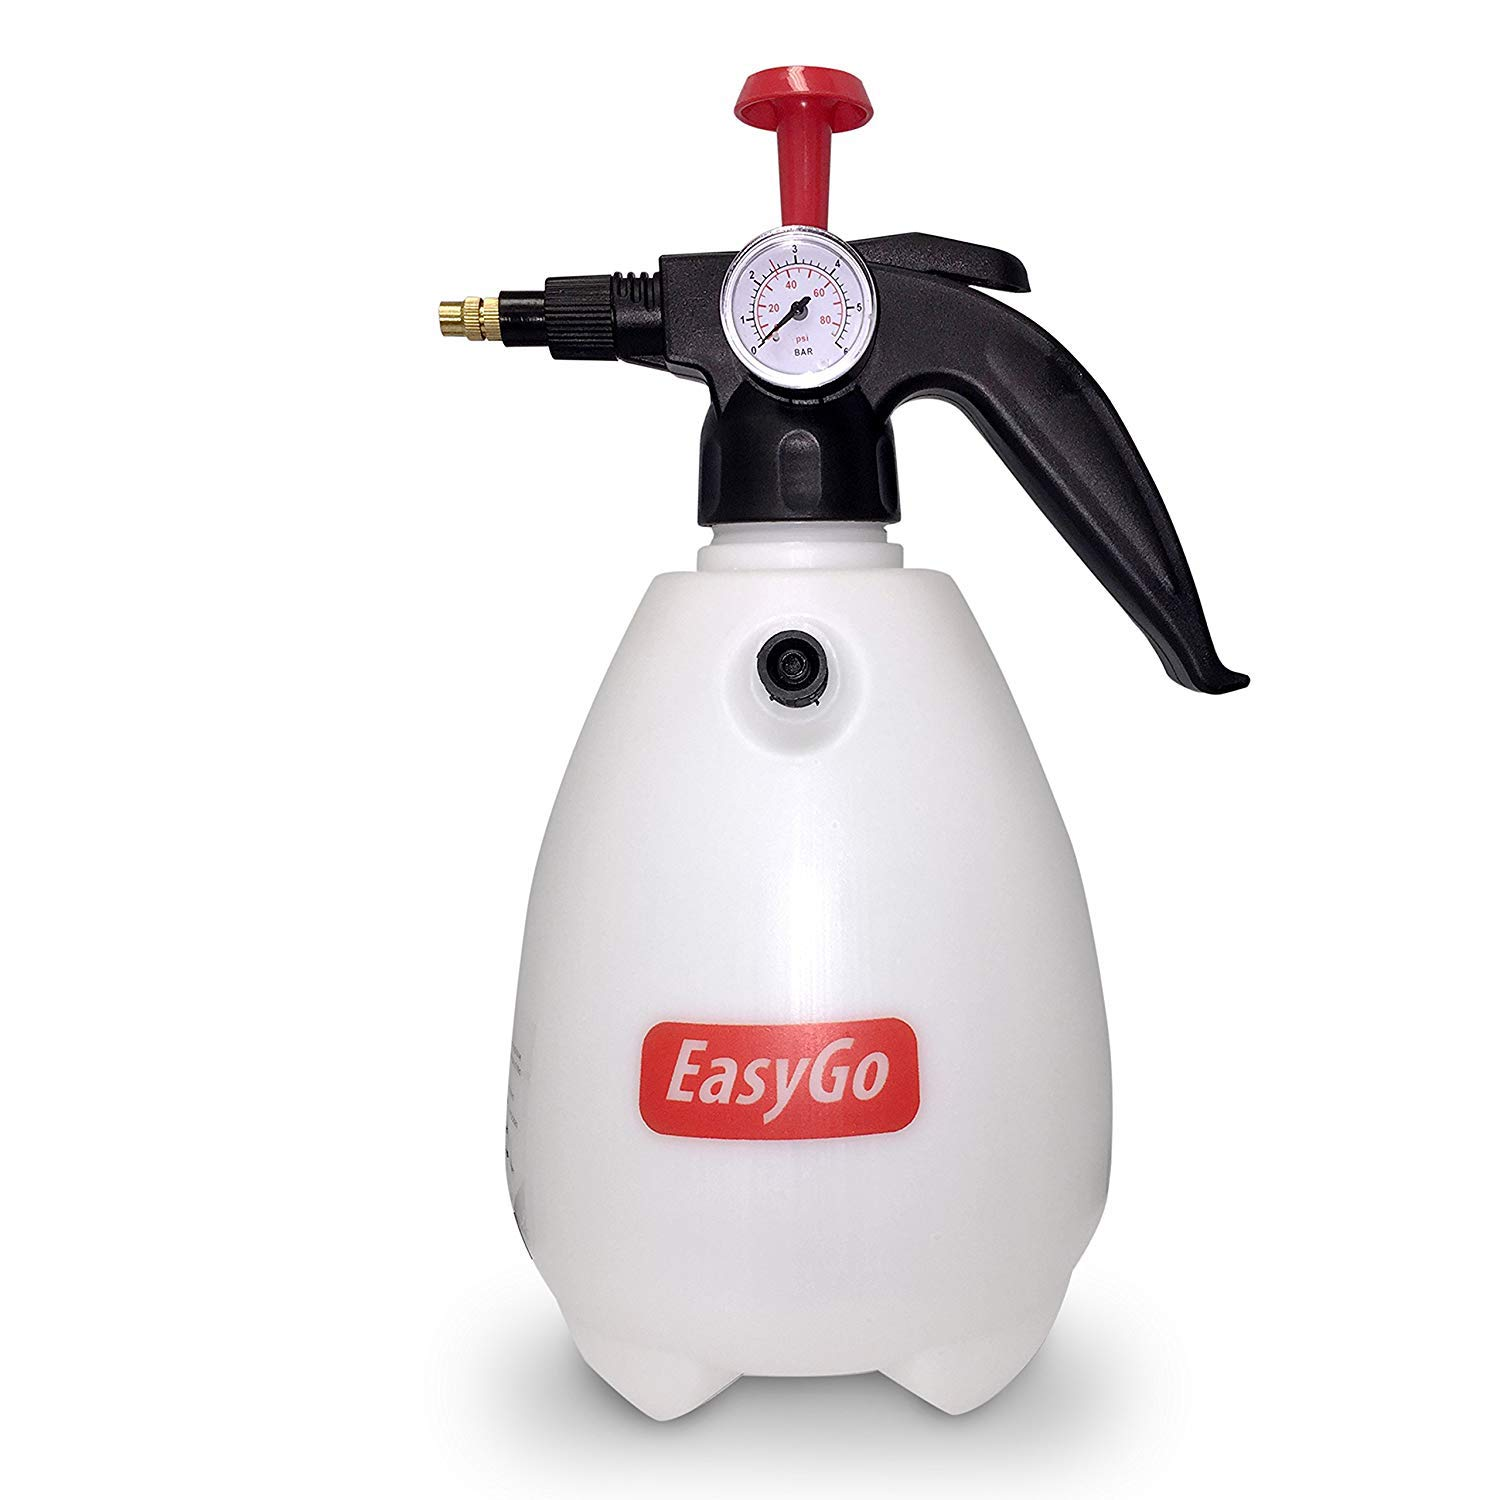 EasyGo Spray Bottle 2 Liter (68 Ounces) Hand Pump Pressure Sprayer W/Pressure Gauge – Mister Setting - Great for Gardening, Fertilizing, Cleaning & General Use Spraying Water - Chemicals - Pesticides